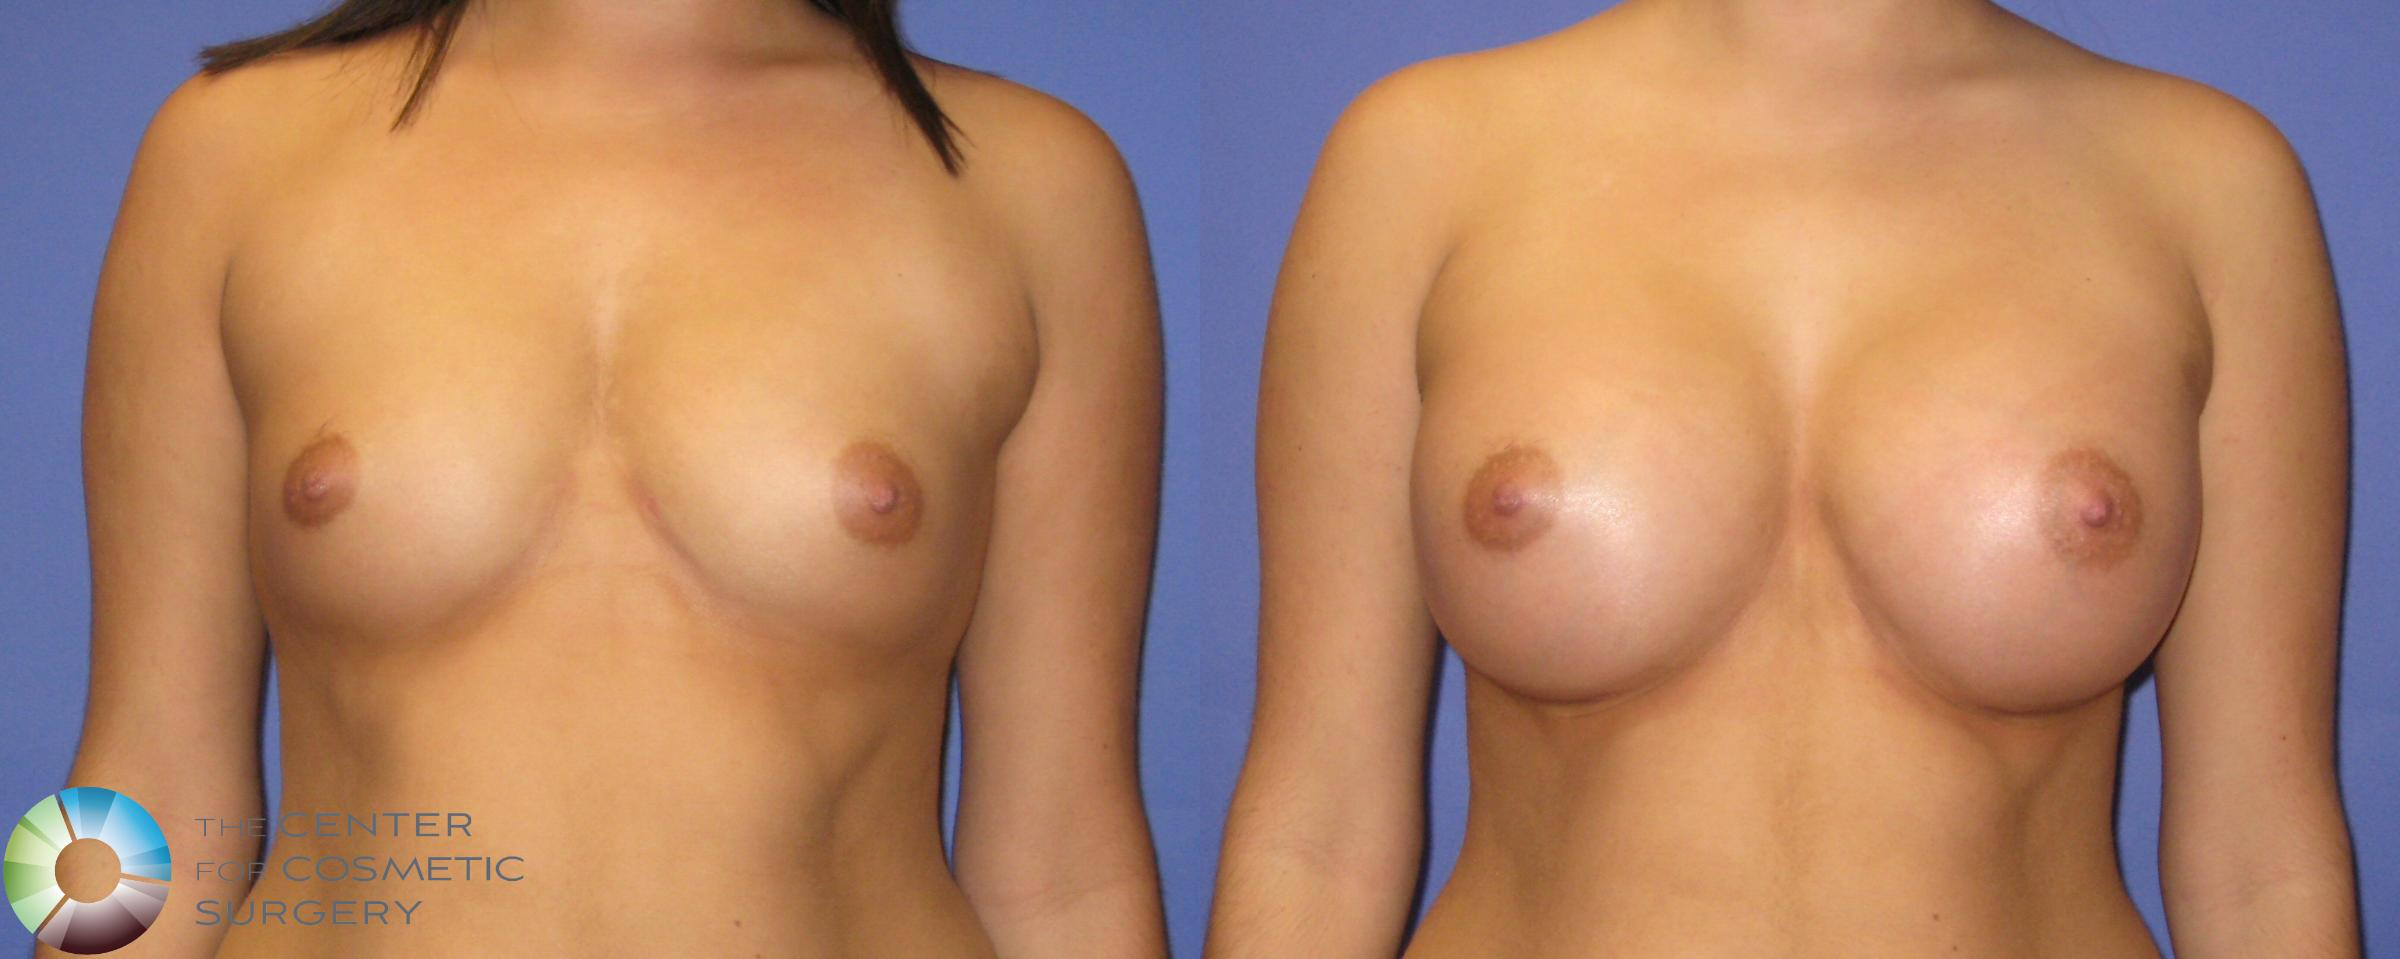 Breast Augmentation Case 352 Before & After View #1 | Golden, CO | The Center for Cosmetic Surgery